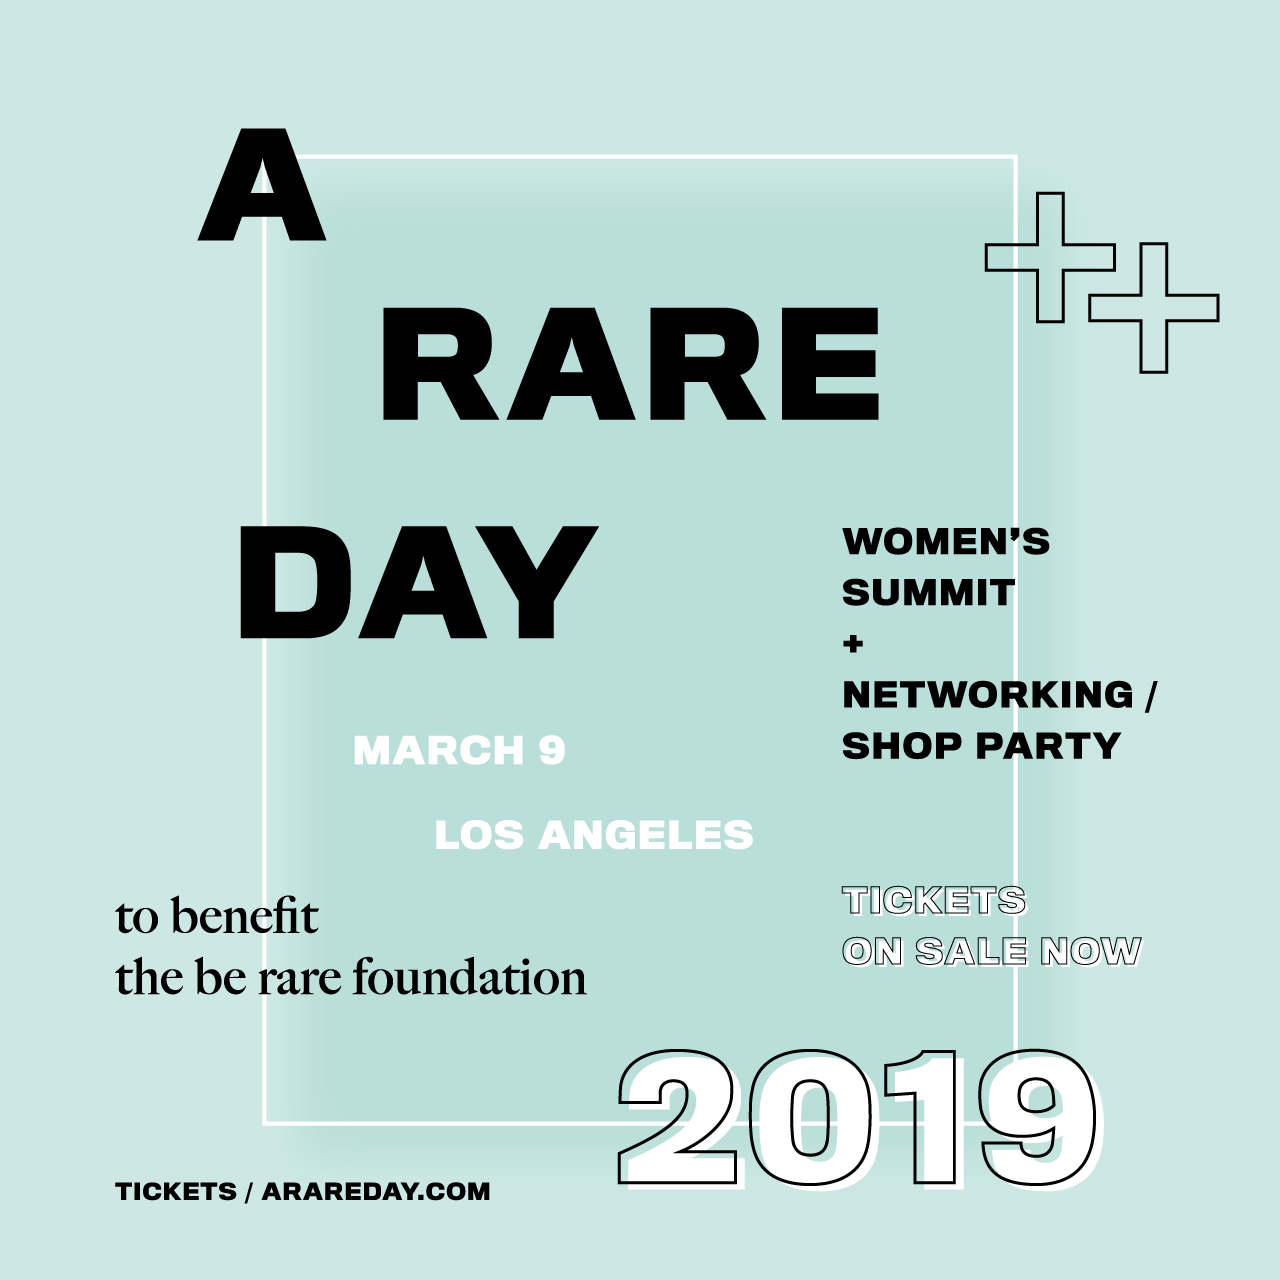 ARAREDAY_Announcement_IG Square - on sale now.png